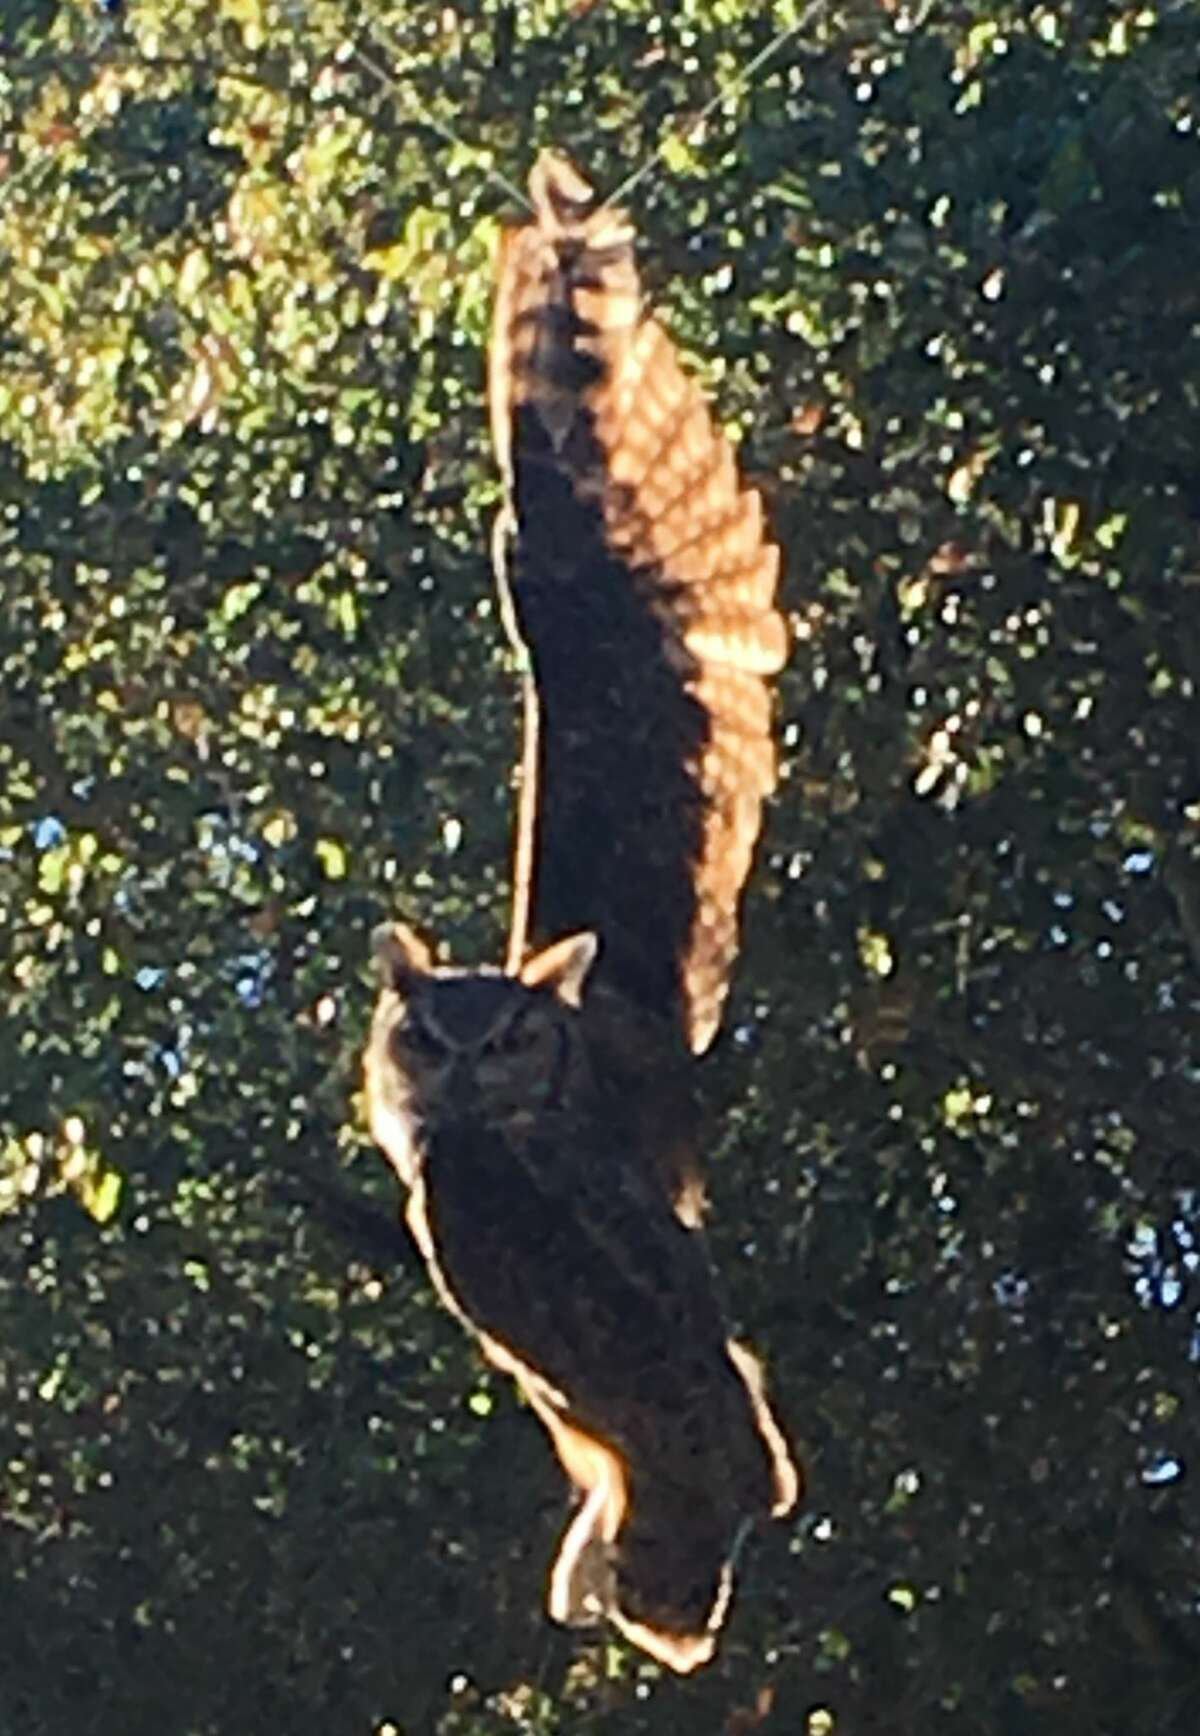 A great horned owl found itself tangled in kite string Monday, before being rescued by officials in Woodside, Calif.